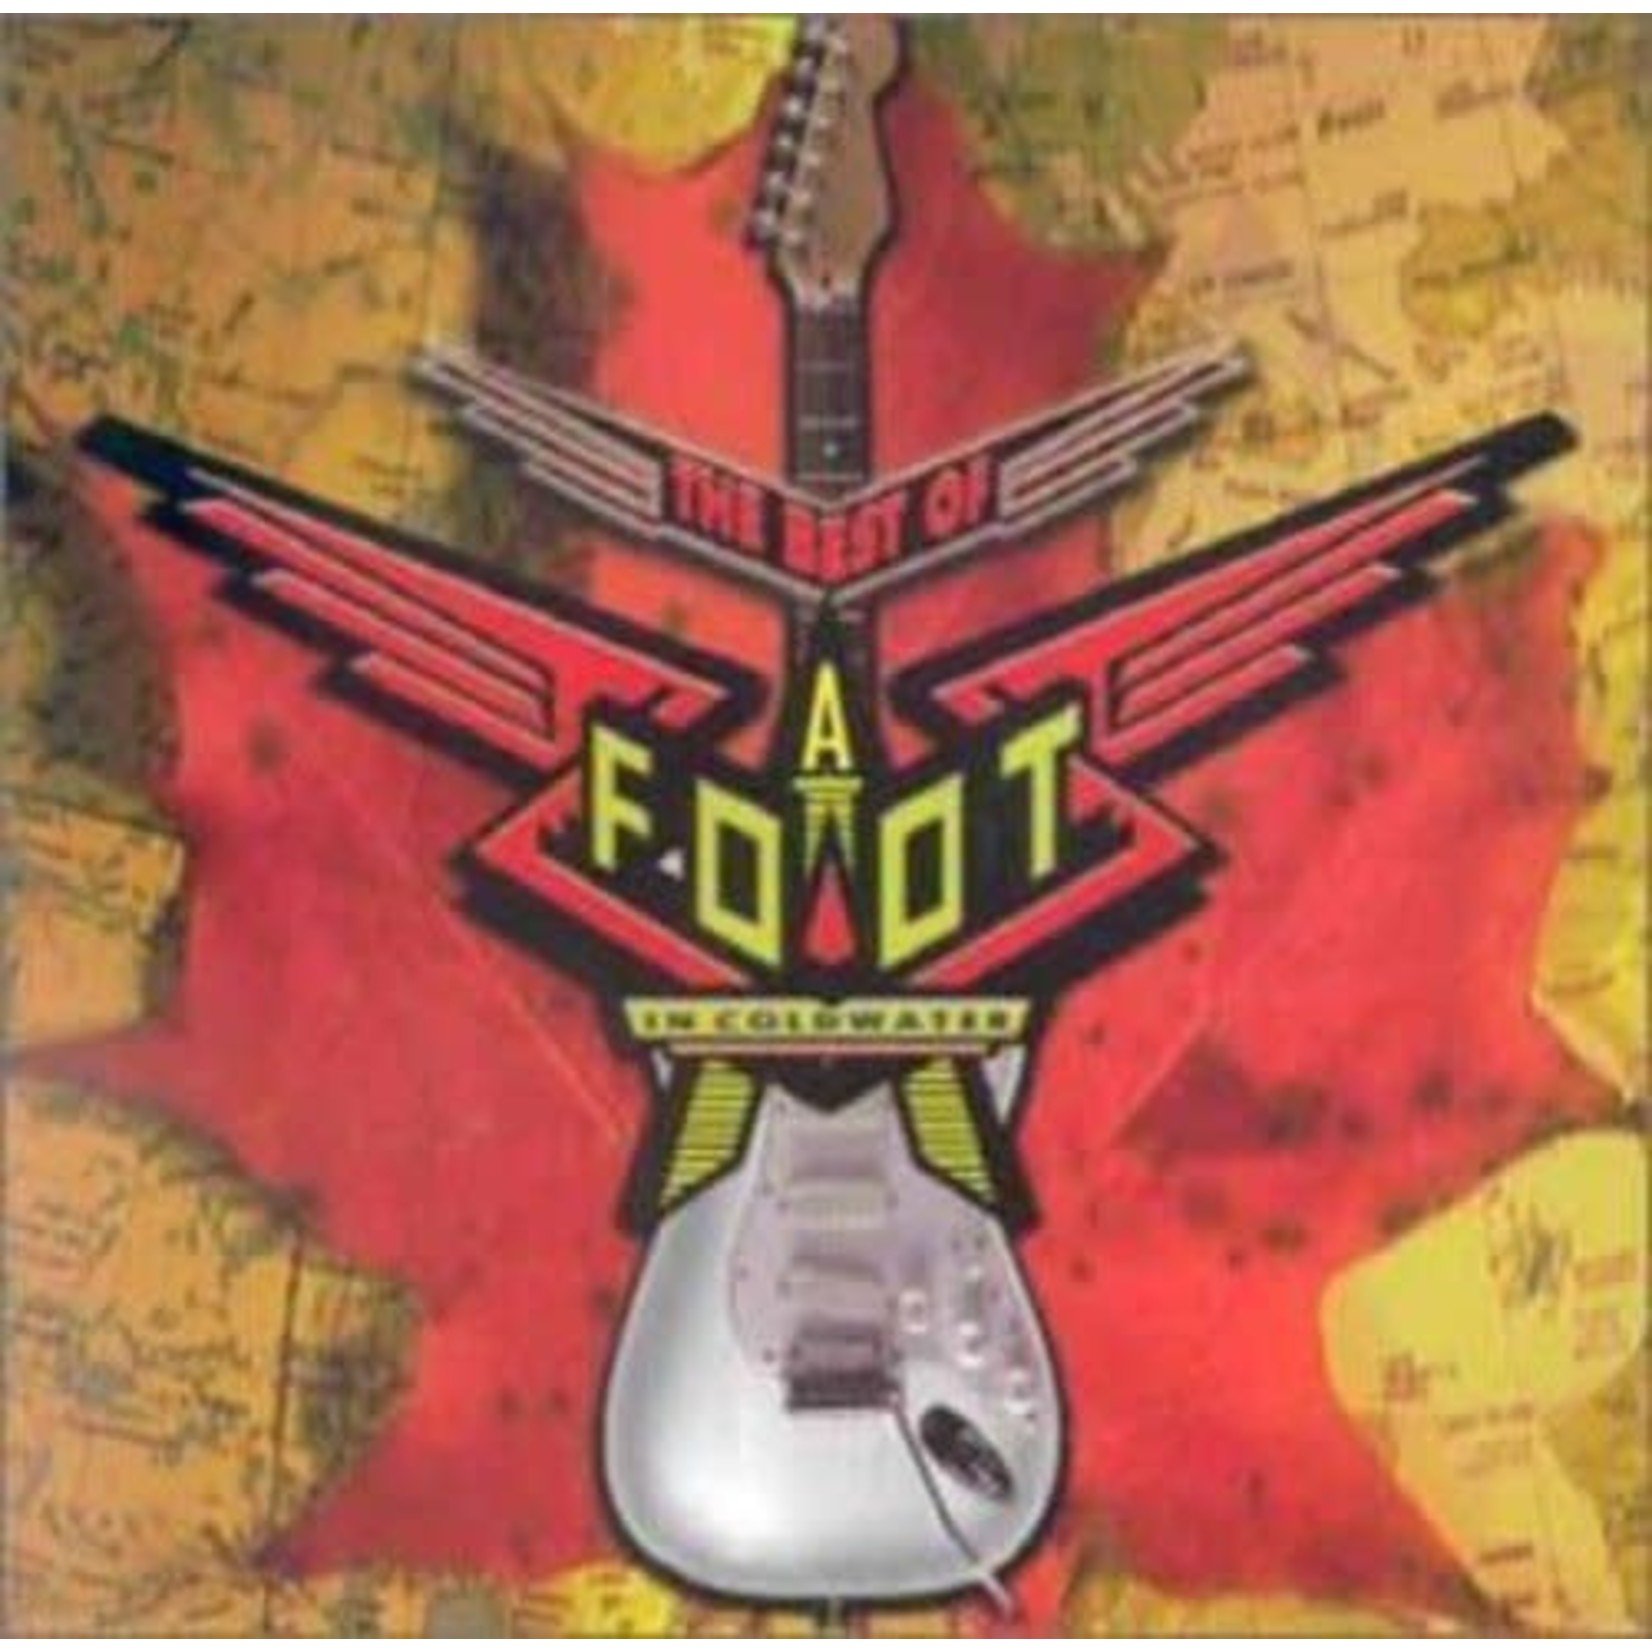 Compact Disc A Foot In Coldwater - The Best Of (2 CD)